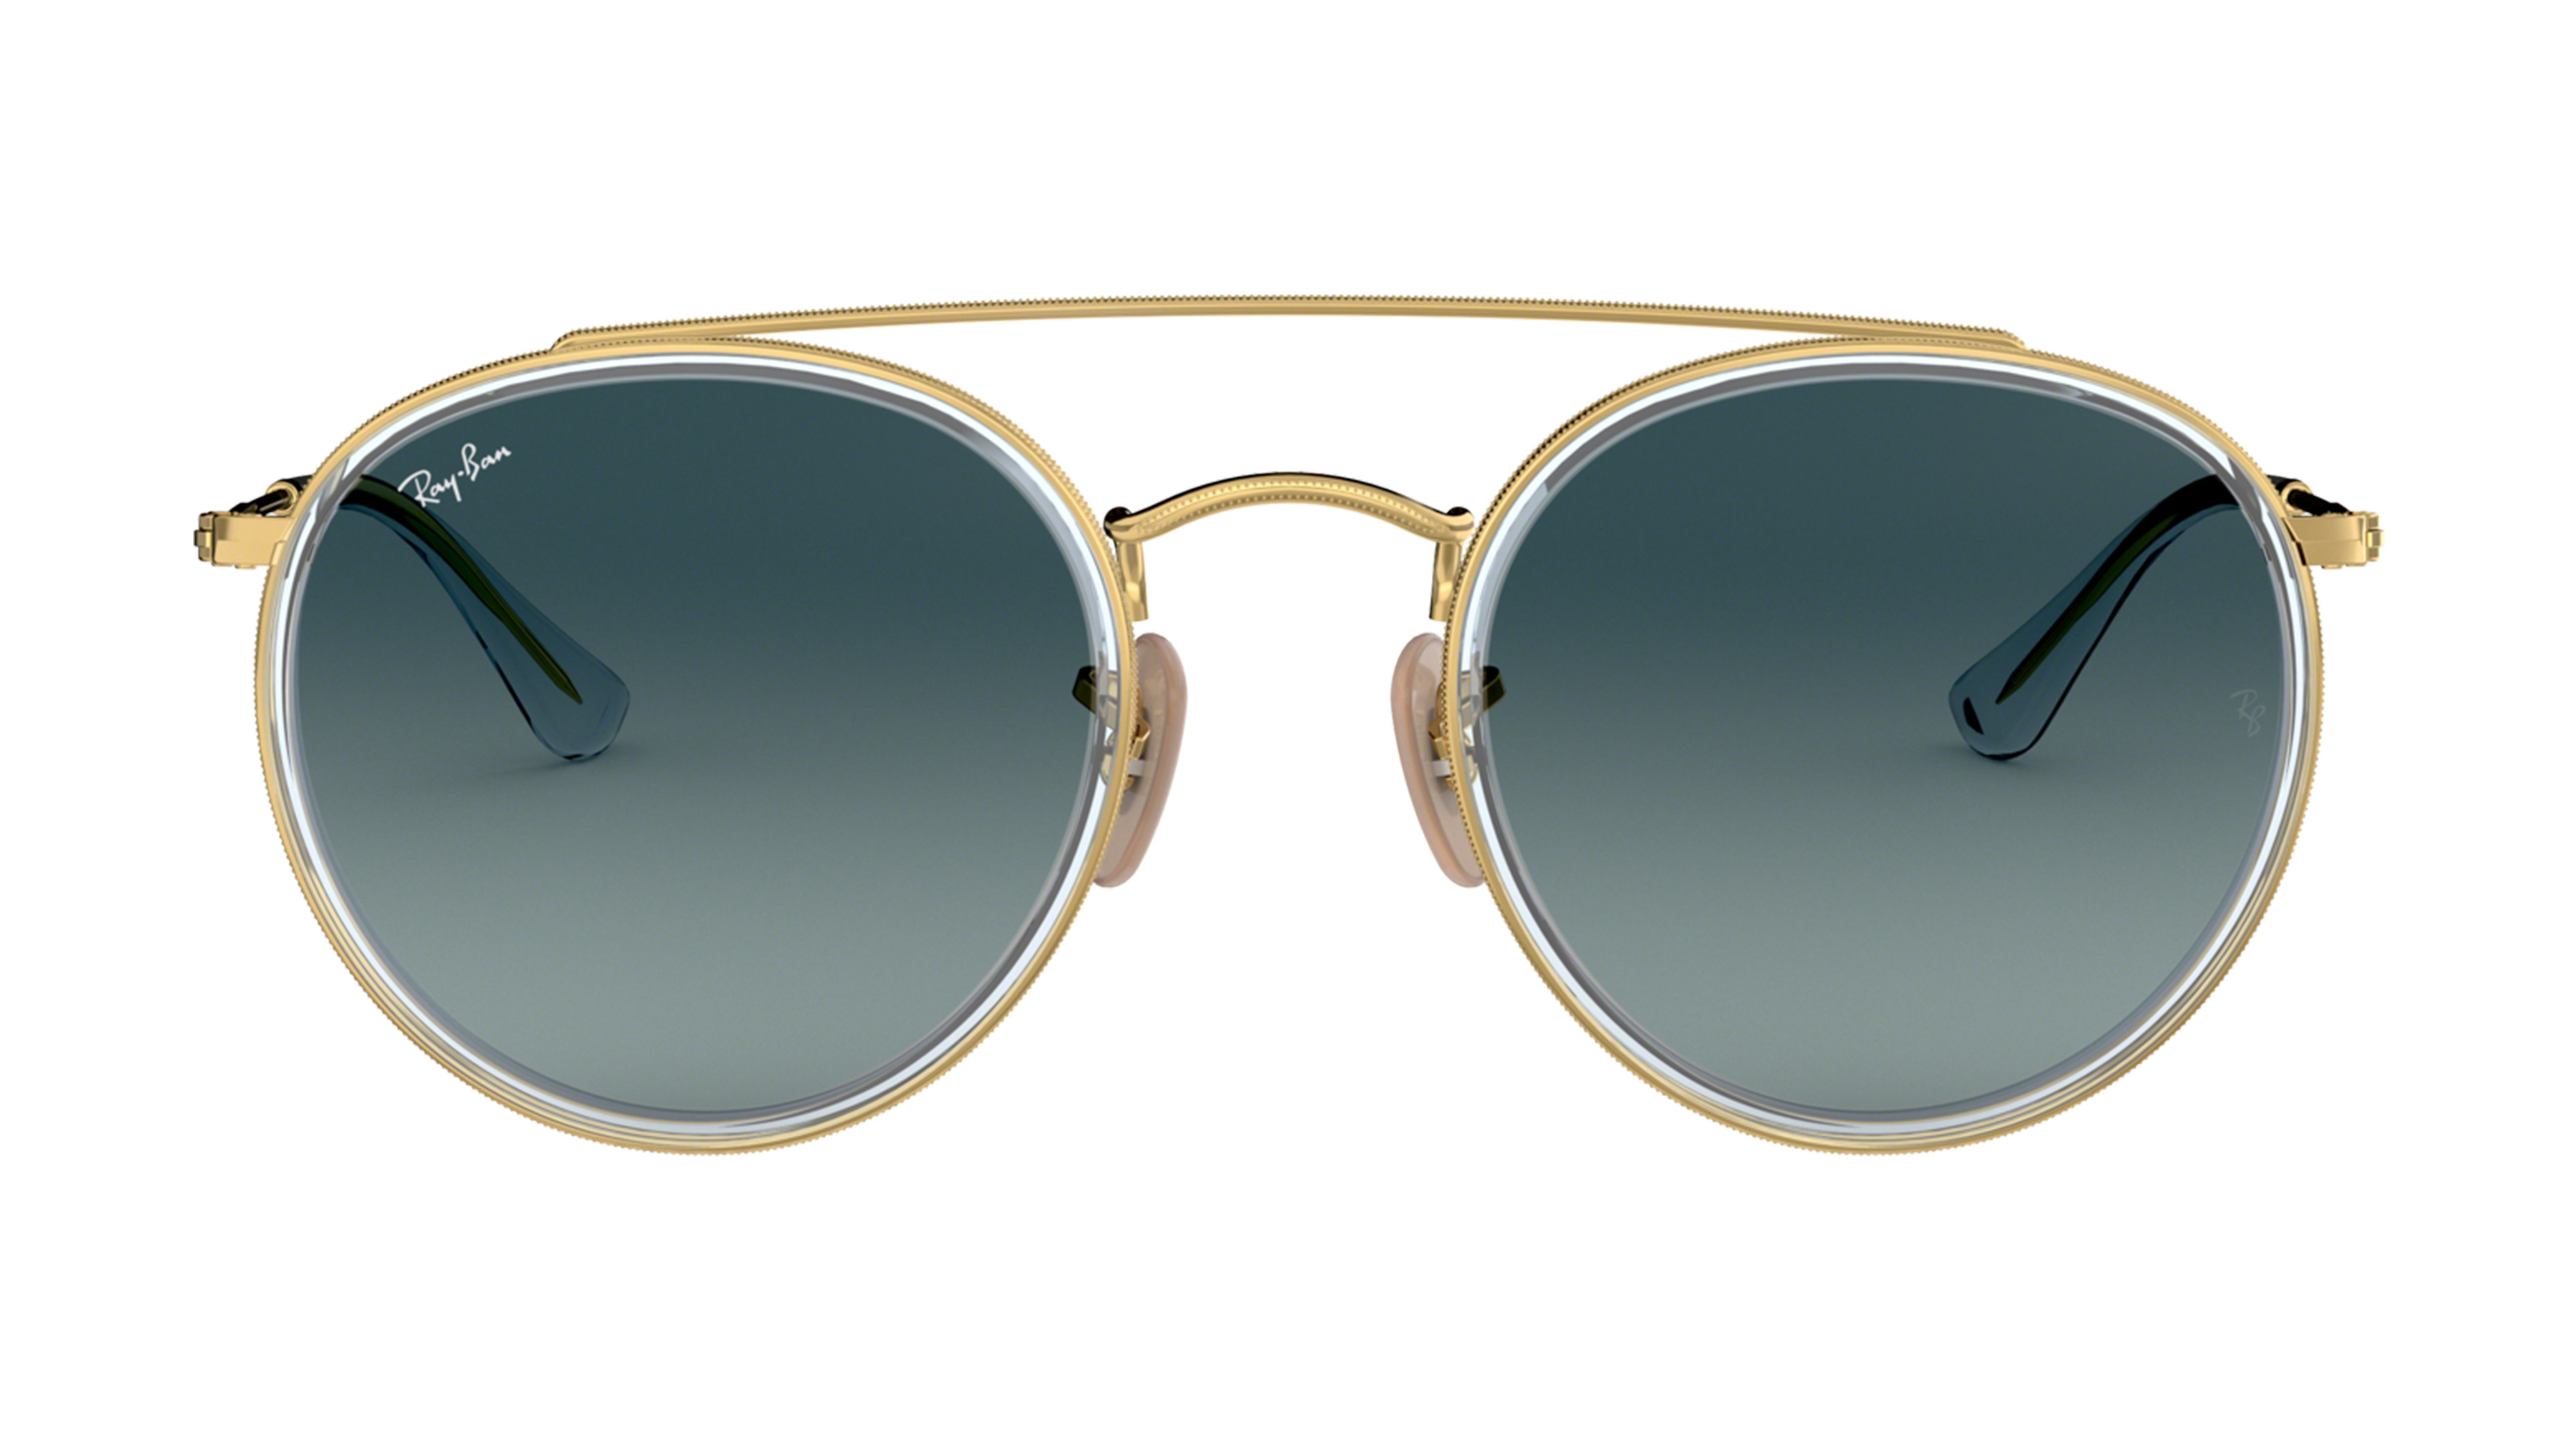 8053672974843-front-Ray-Ban-Sonnenbrille-0RB3647N-91233M